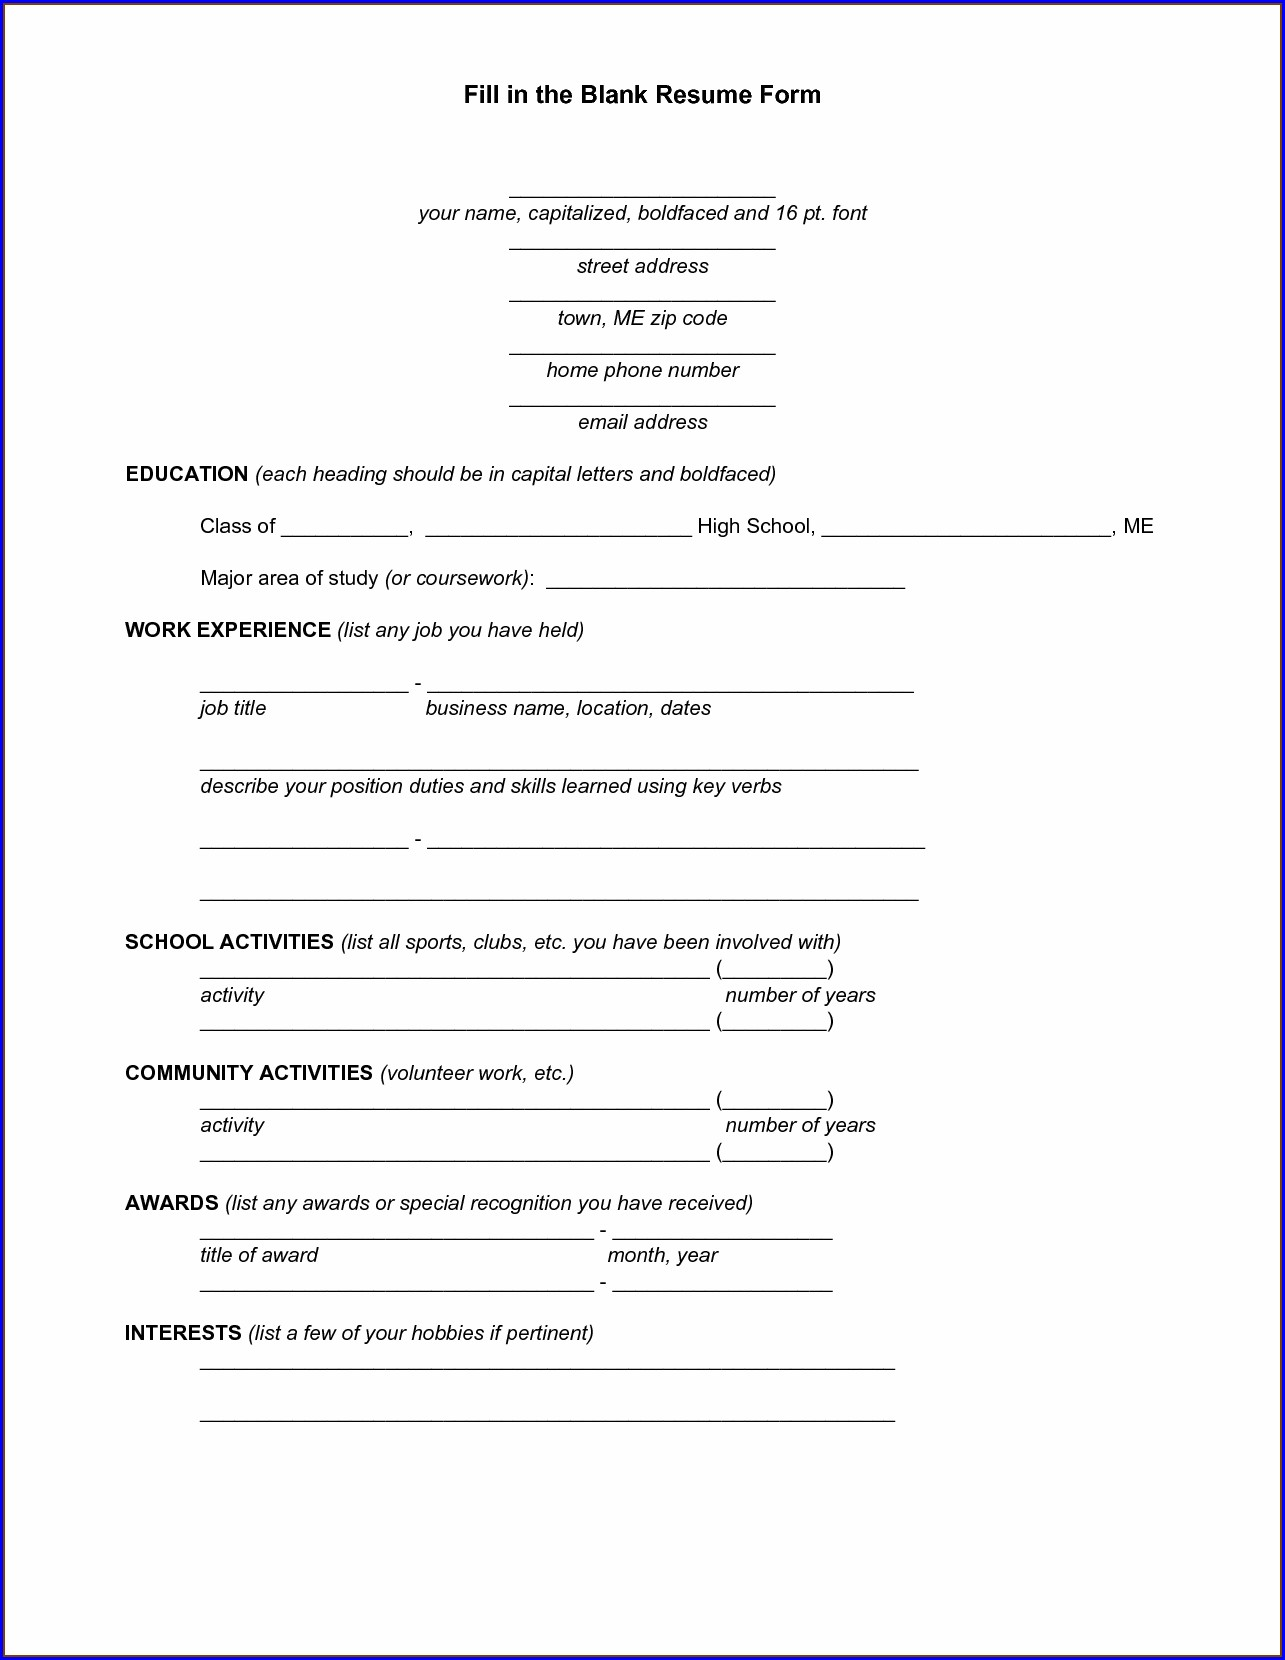 Resume Fill In The Blank Pdf Free Download